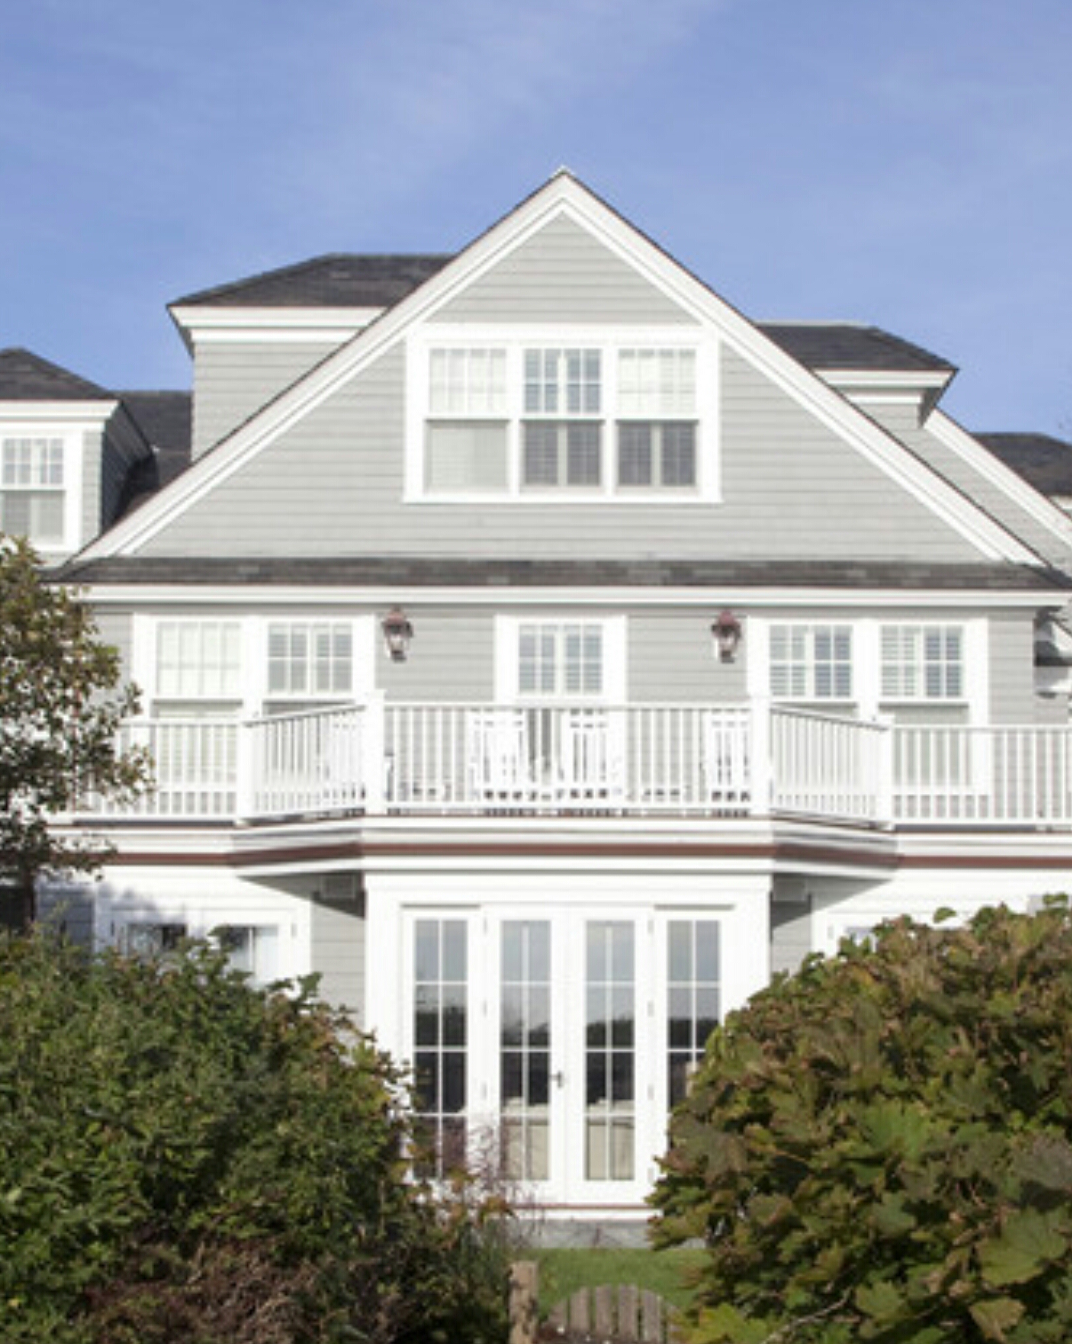 Colorbond surfmist building a coastal home - Dulux exterior paint colour schemes property ...